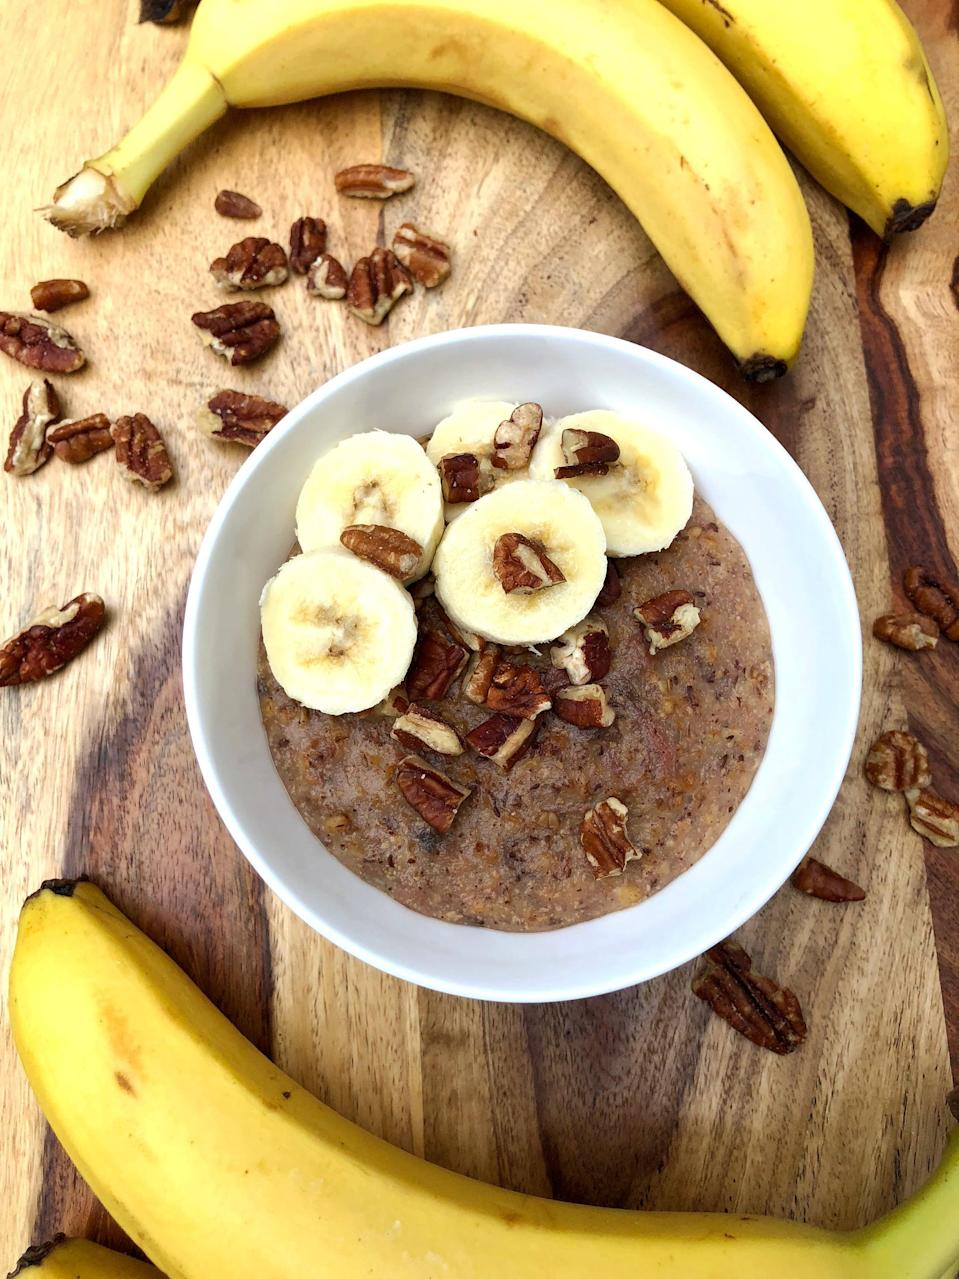 "<p>With just five minutes of prep on Sunday night, you'll have five breakfasts to spoon into all week long (thank you, slow cooker!).</p> <p><strong>Calories:</strong> 247<br> <strong>Protein:</strong> 8 grams</p> <p><strong>Get the recipe:</strong> <a href=""https://www.popsugar.com/fitness/Slow-Cooker-Banana-Steel-Cut-Oatmeal-45430189"" class=""link rapid-noclick-resp"" rel=""nofollow noopener"" target=""_blank"" data-ylk=""slk:slow-cooker banana steel-cut oatmeal"">slow-cooker banana steel-cut oatmeal</a></p>"